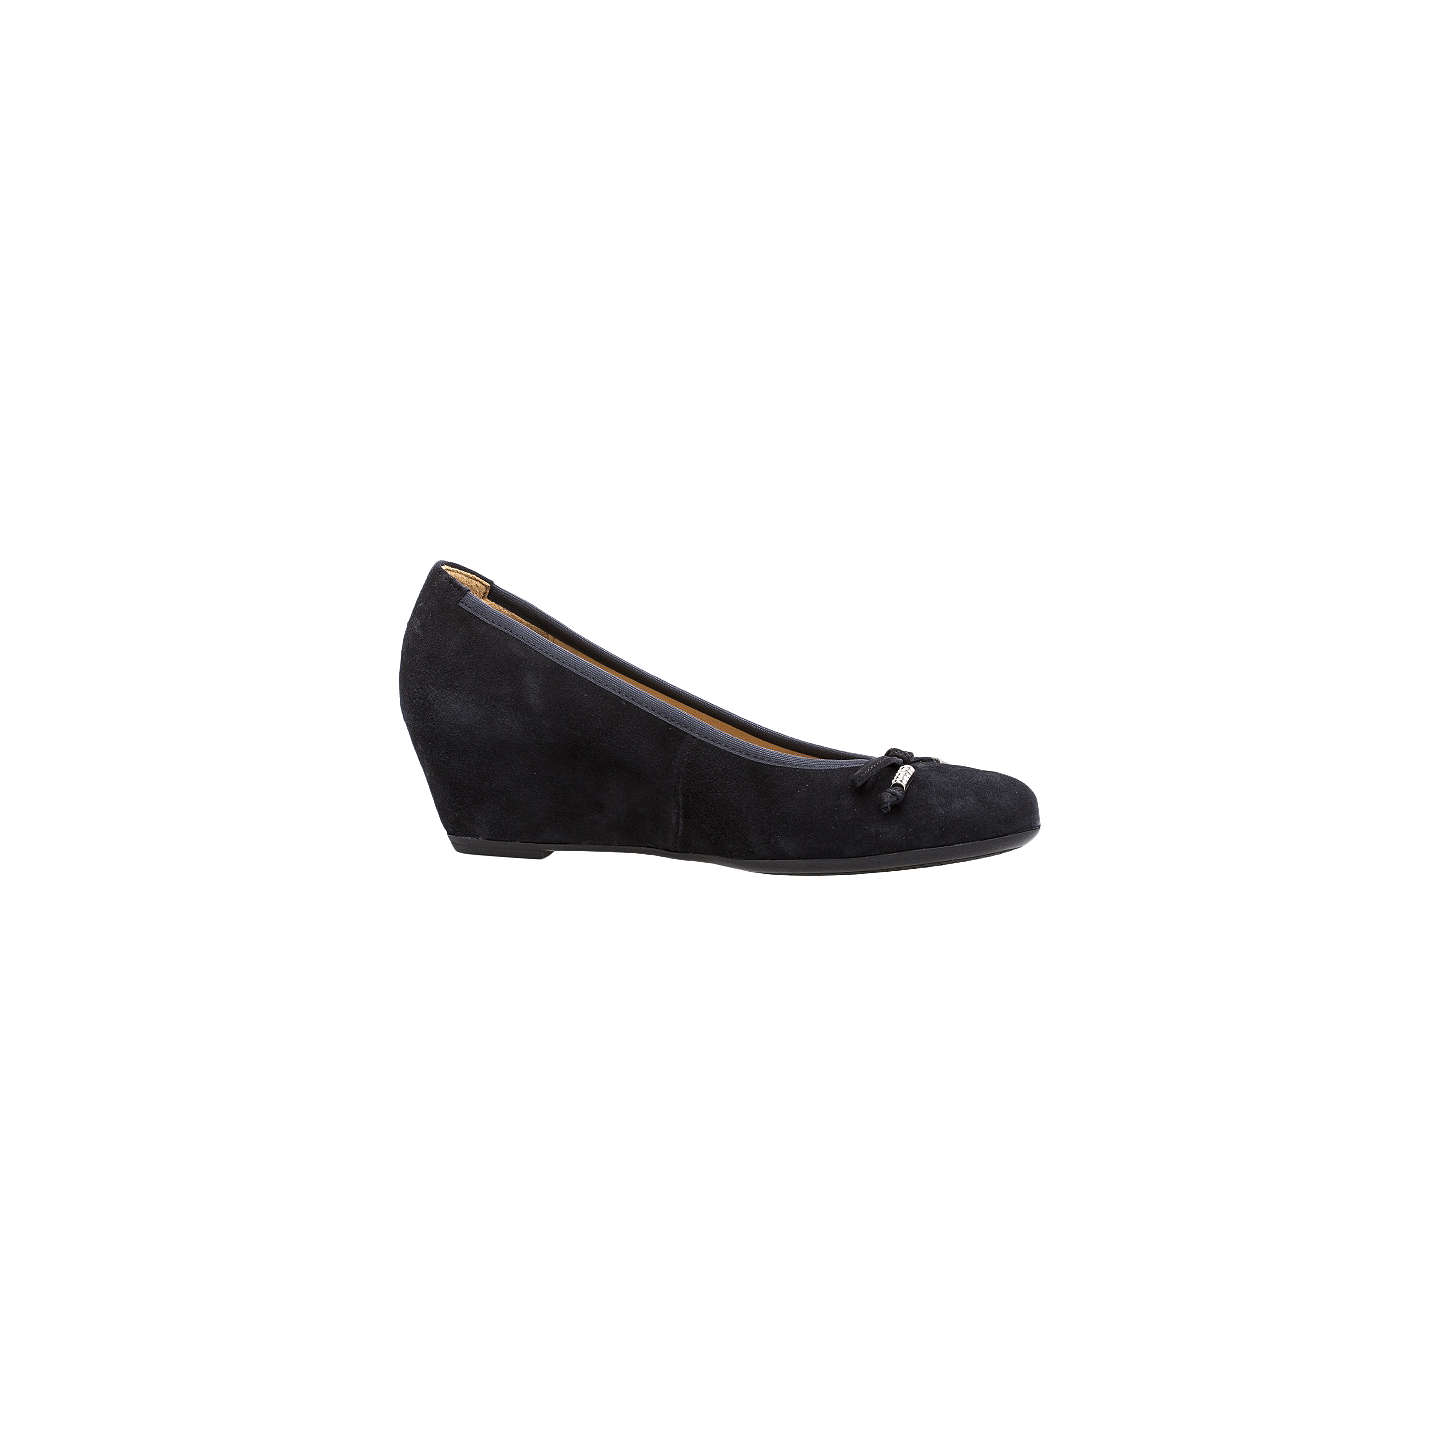 57a158b307a Gabor Alvin Concealed Wedge Heel Court Shoes at John Lewis